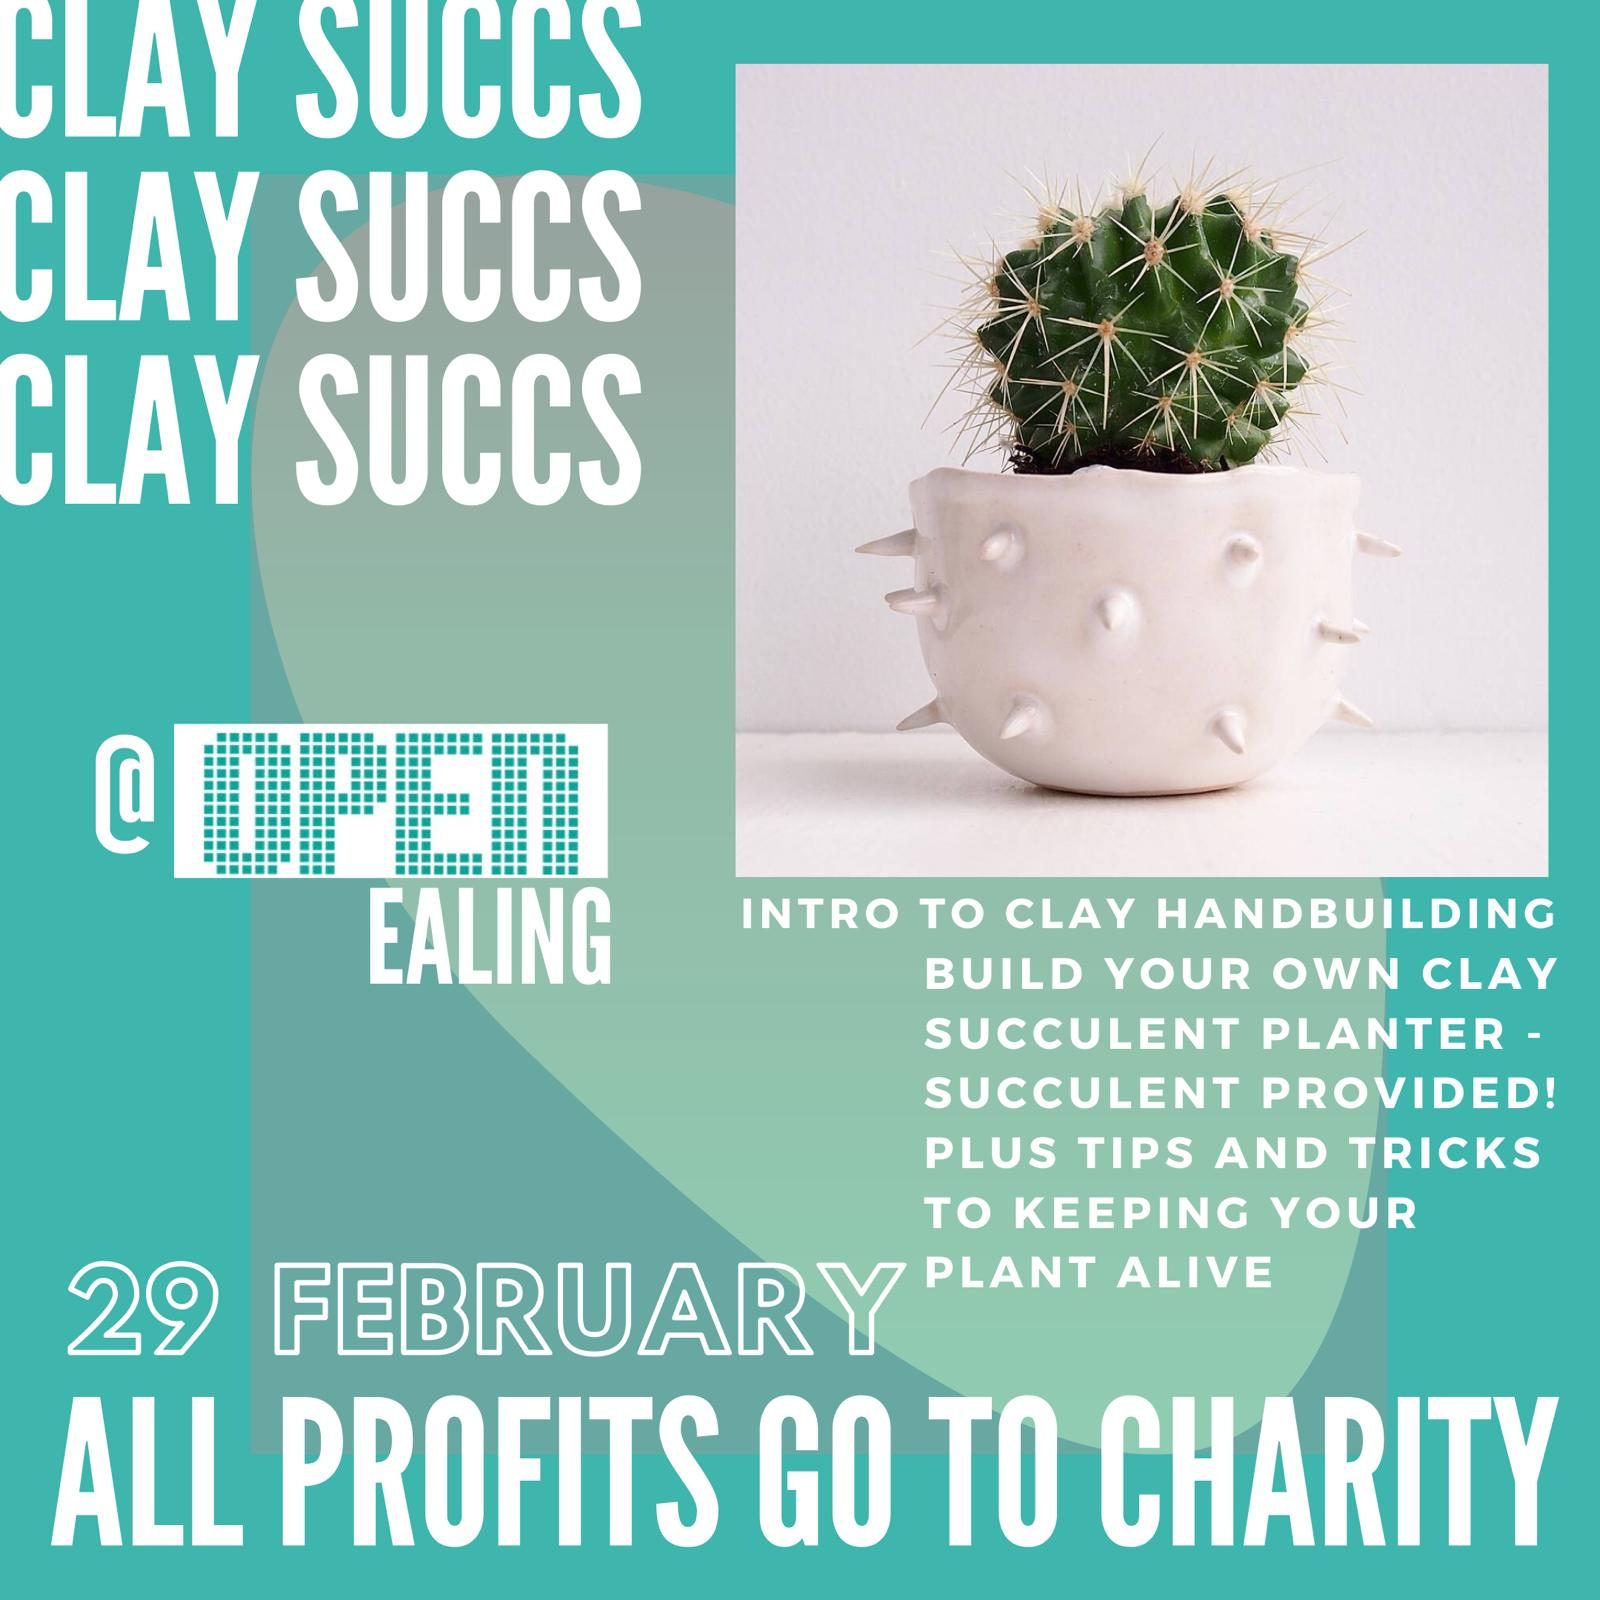 Build your own clay succulent planter